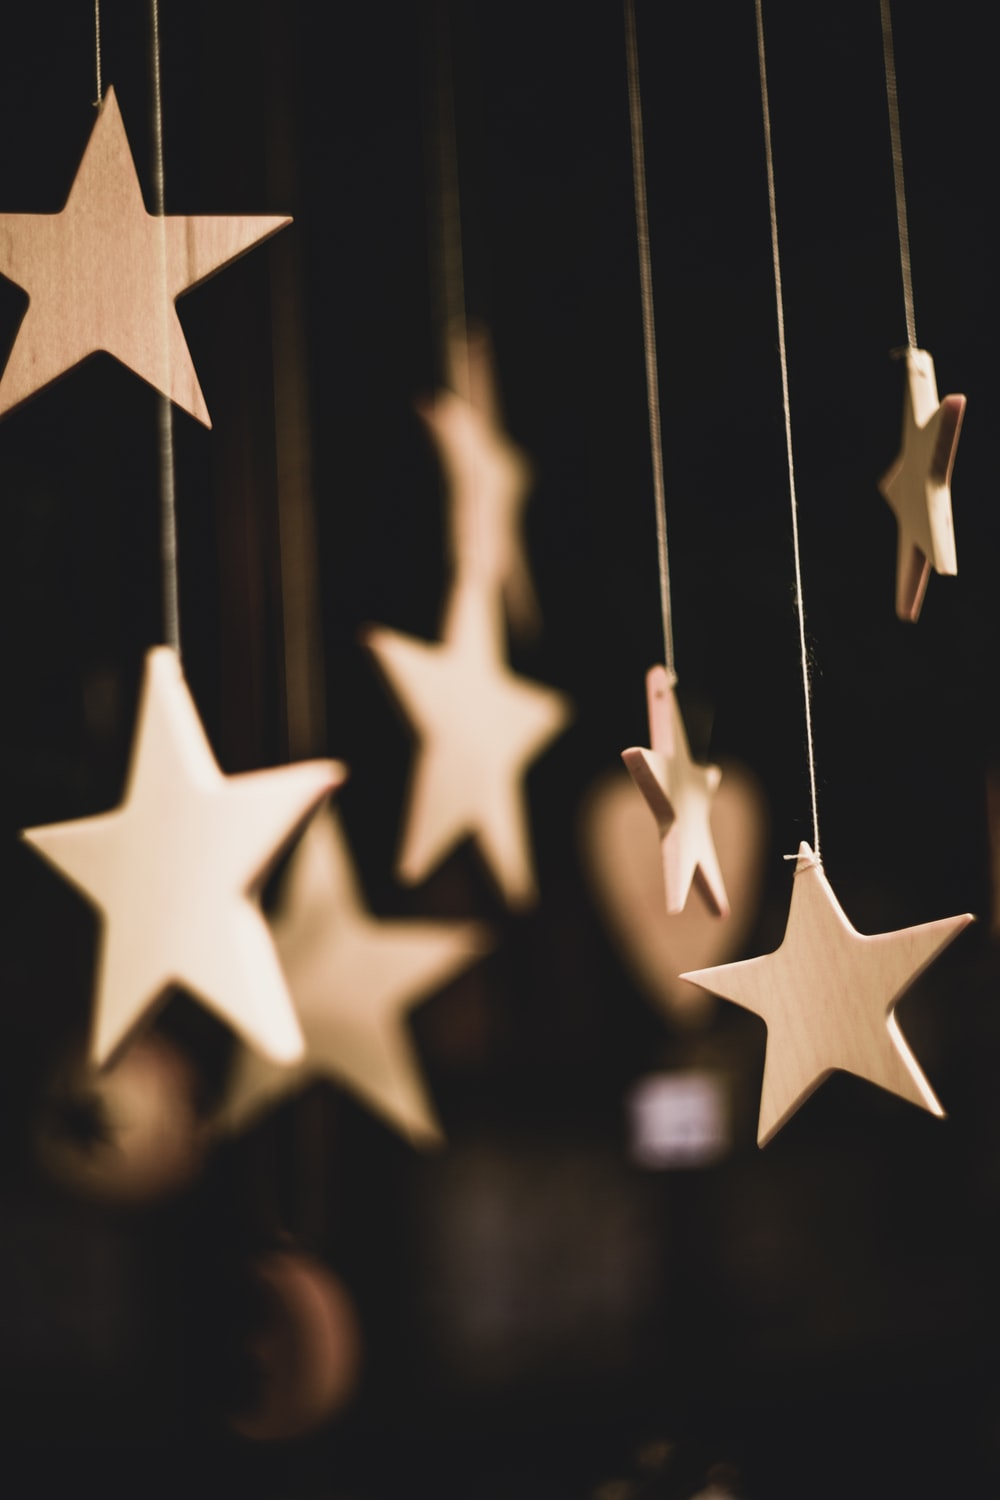 shallow focus photo of wooden stars hanging decor